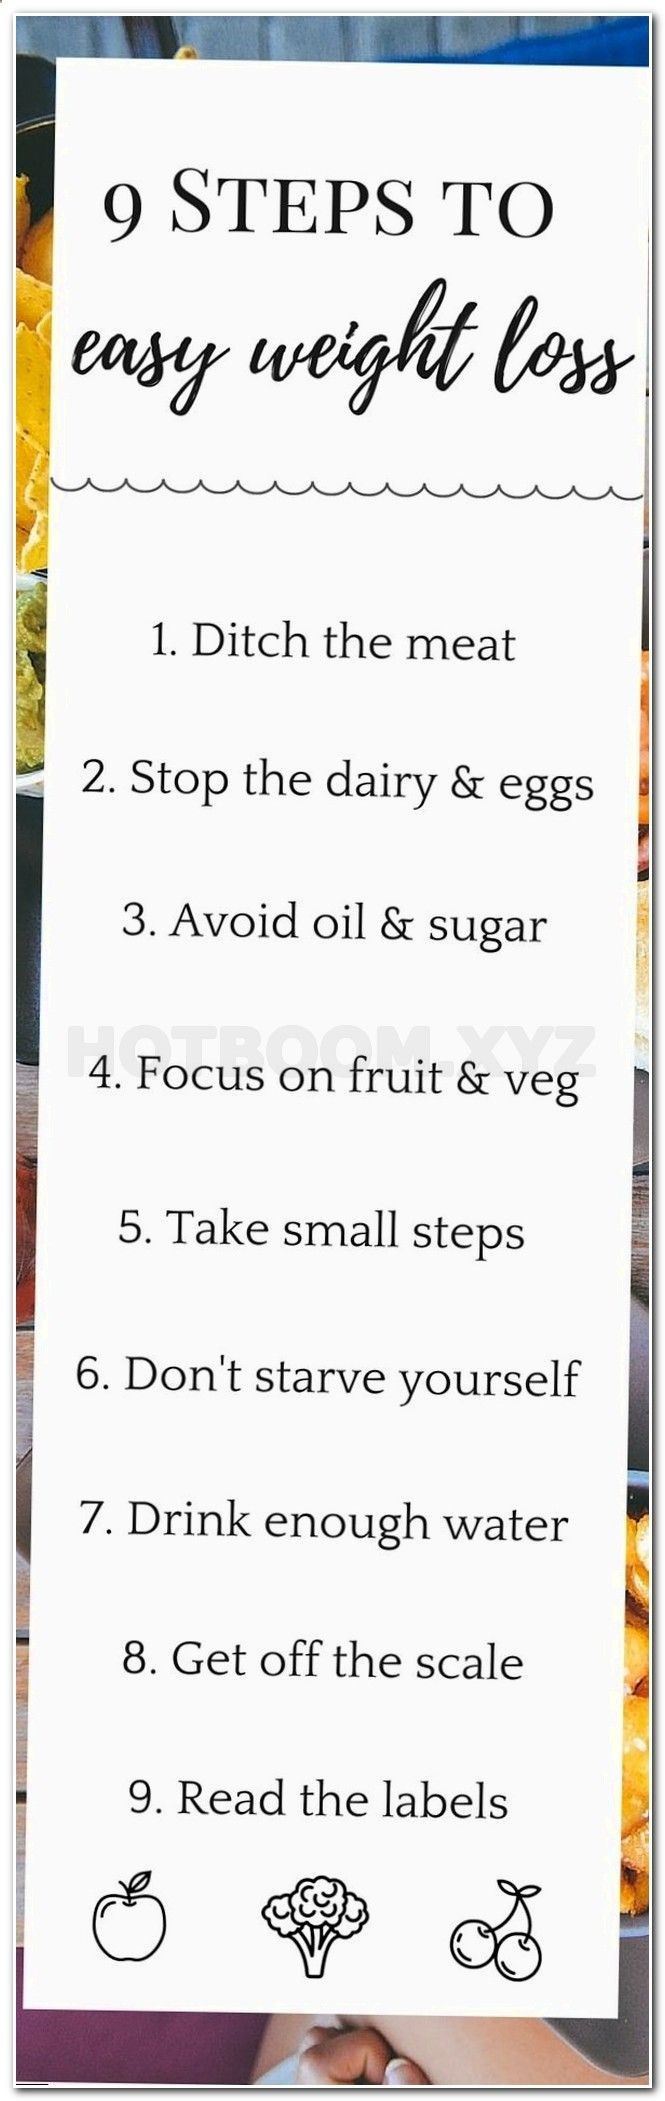 Best 25 daily food plan ideas on pinterest daily diet plan diet of 1200 calories per day diet for losing body fat vegan what to eat best way to lose weight fast natural remedies for diverticulitis flare up nvjuhfo Images